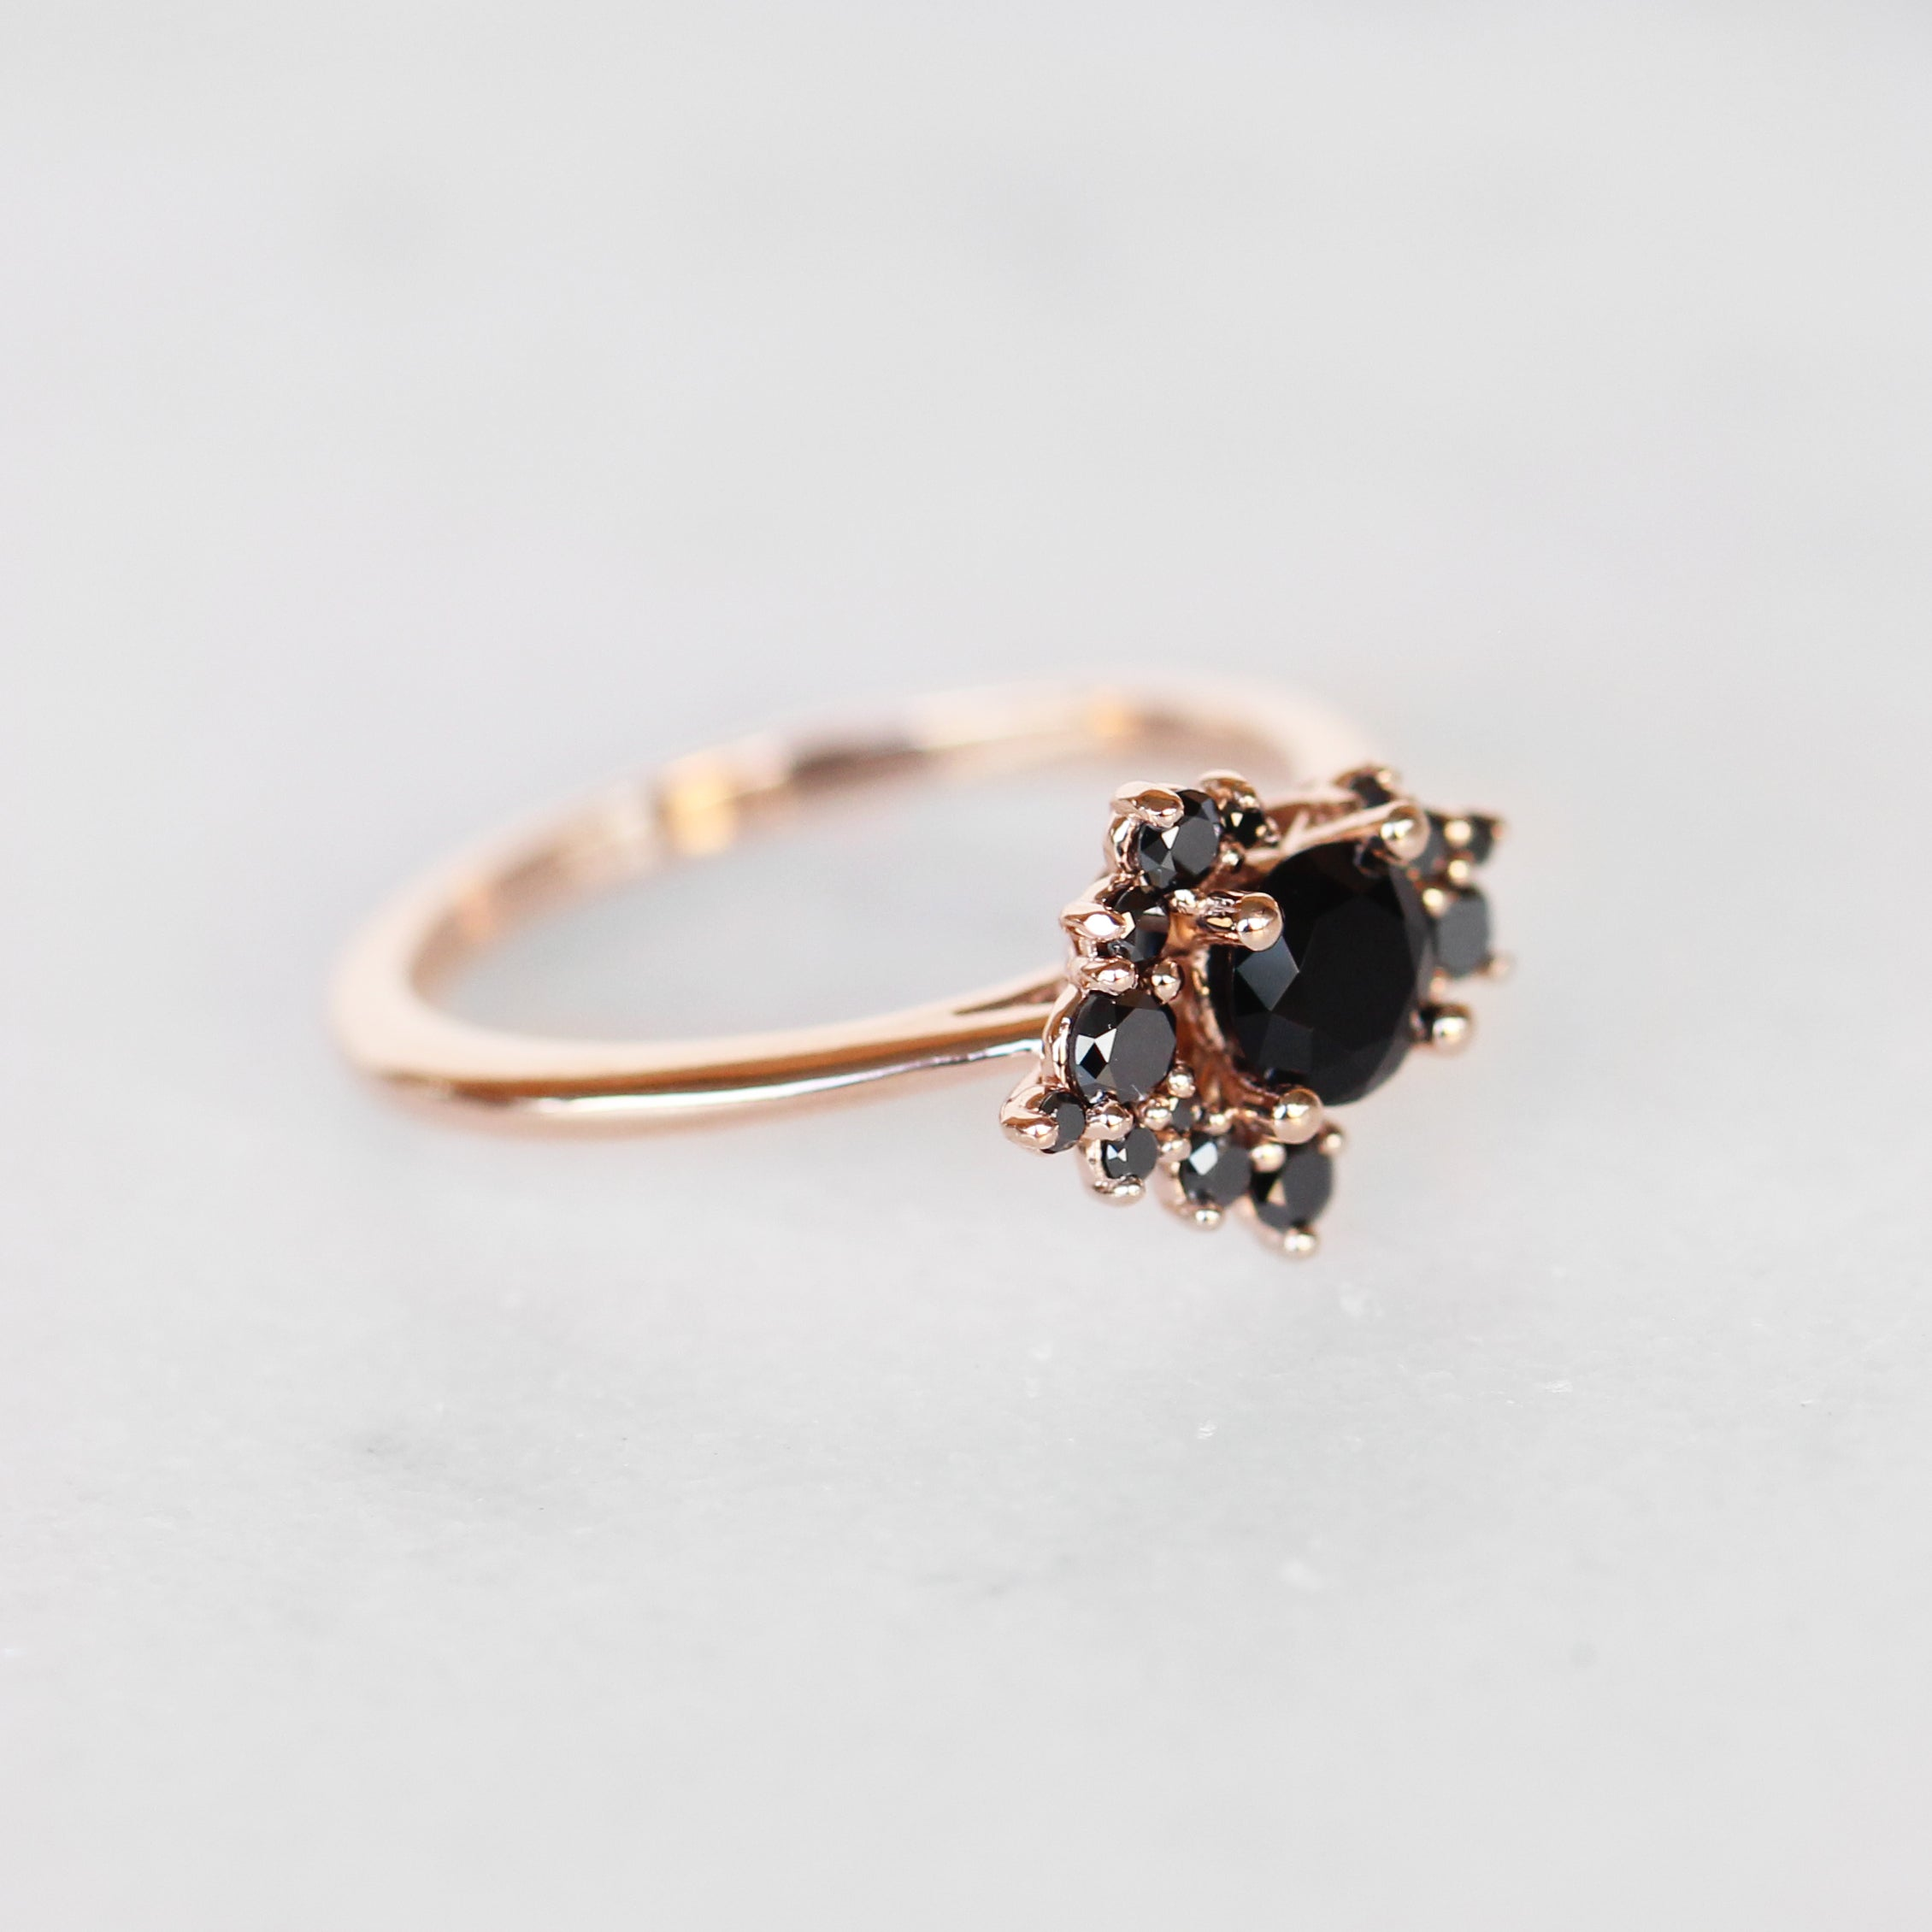 Orion Ring with All Black Diamonds - Cluster ring - Salt & Pepper Celestial Diamond Engagement Rings and Wedding Bands  by Midwinter Co.